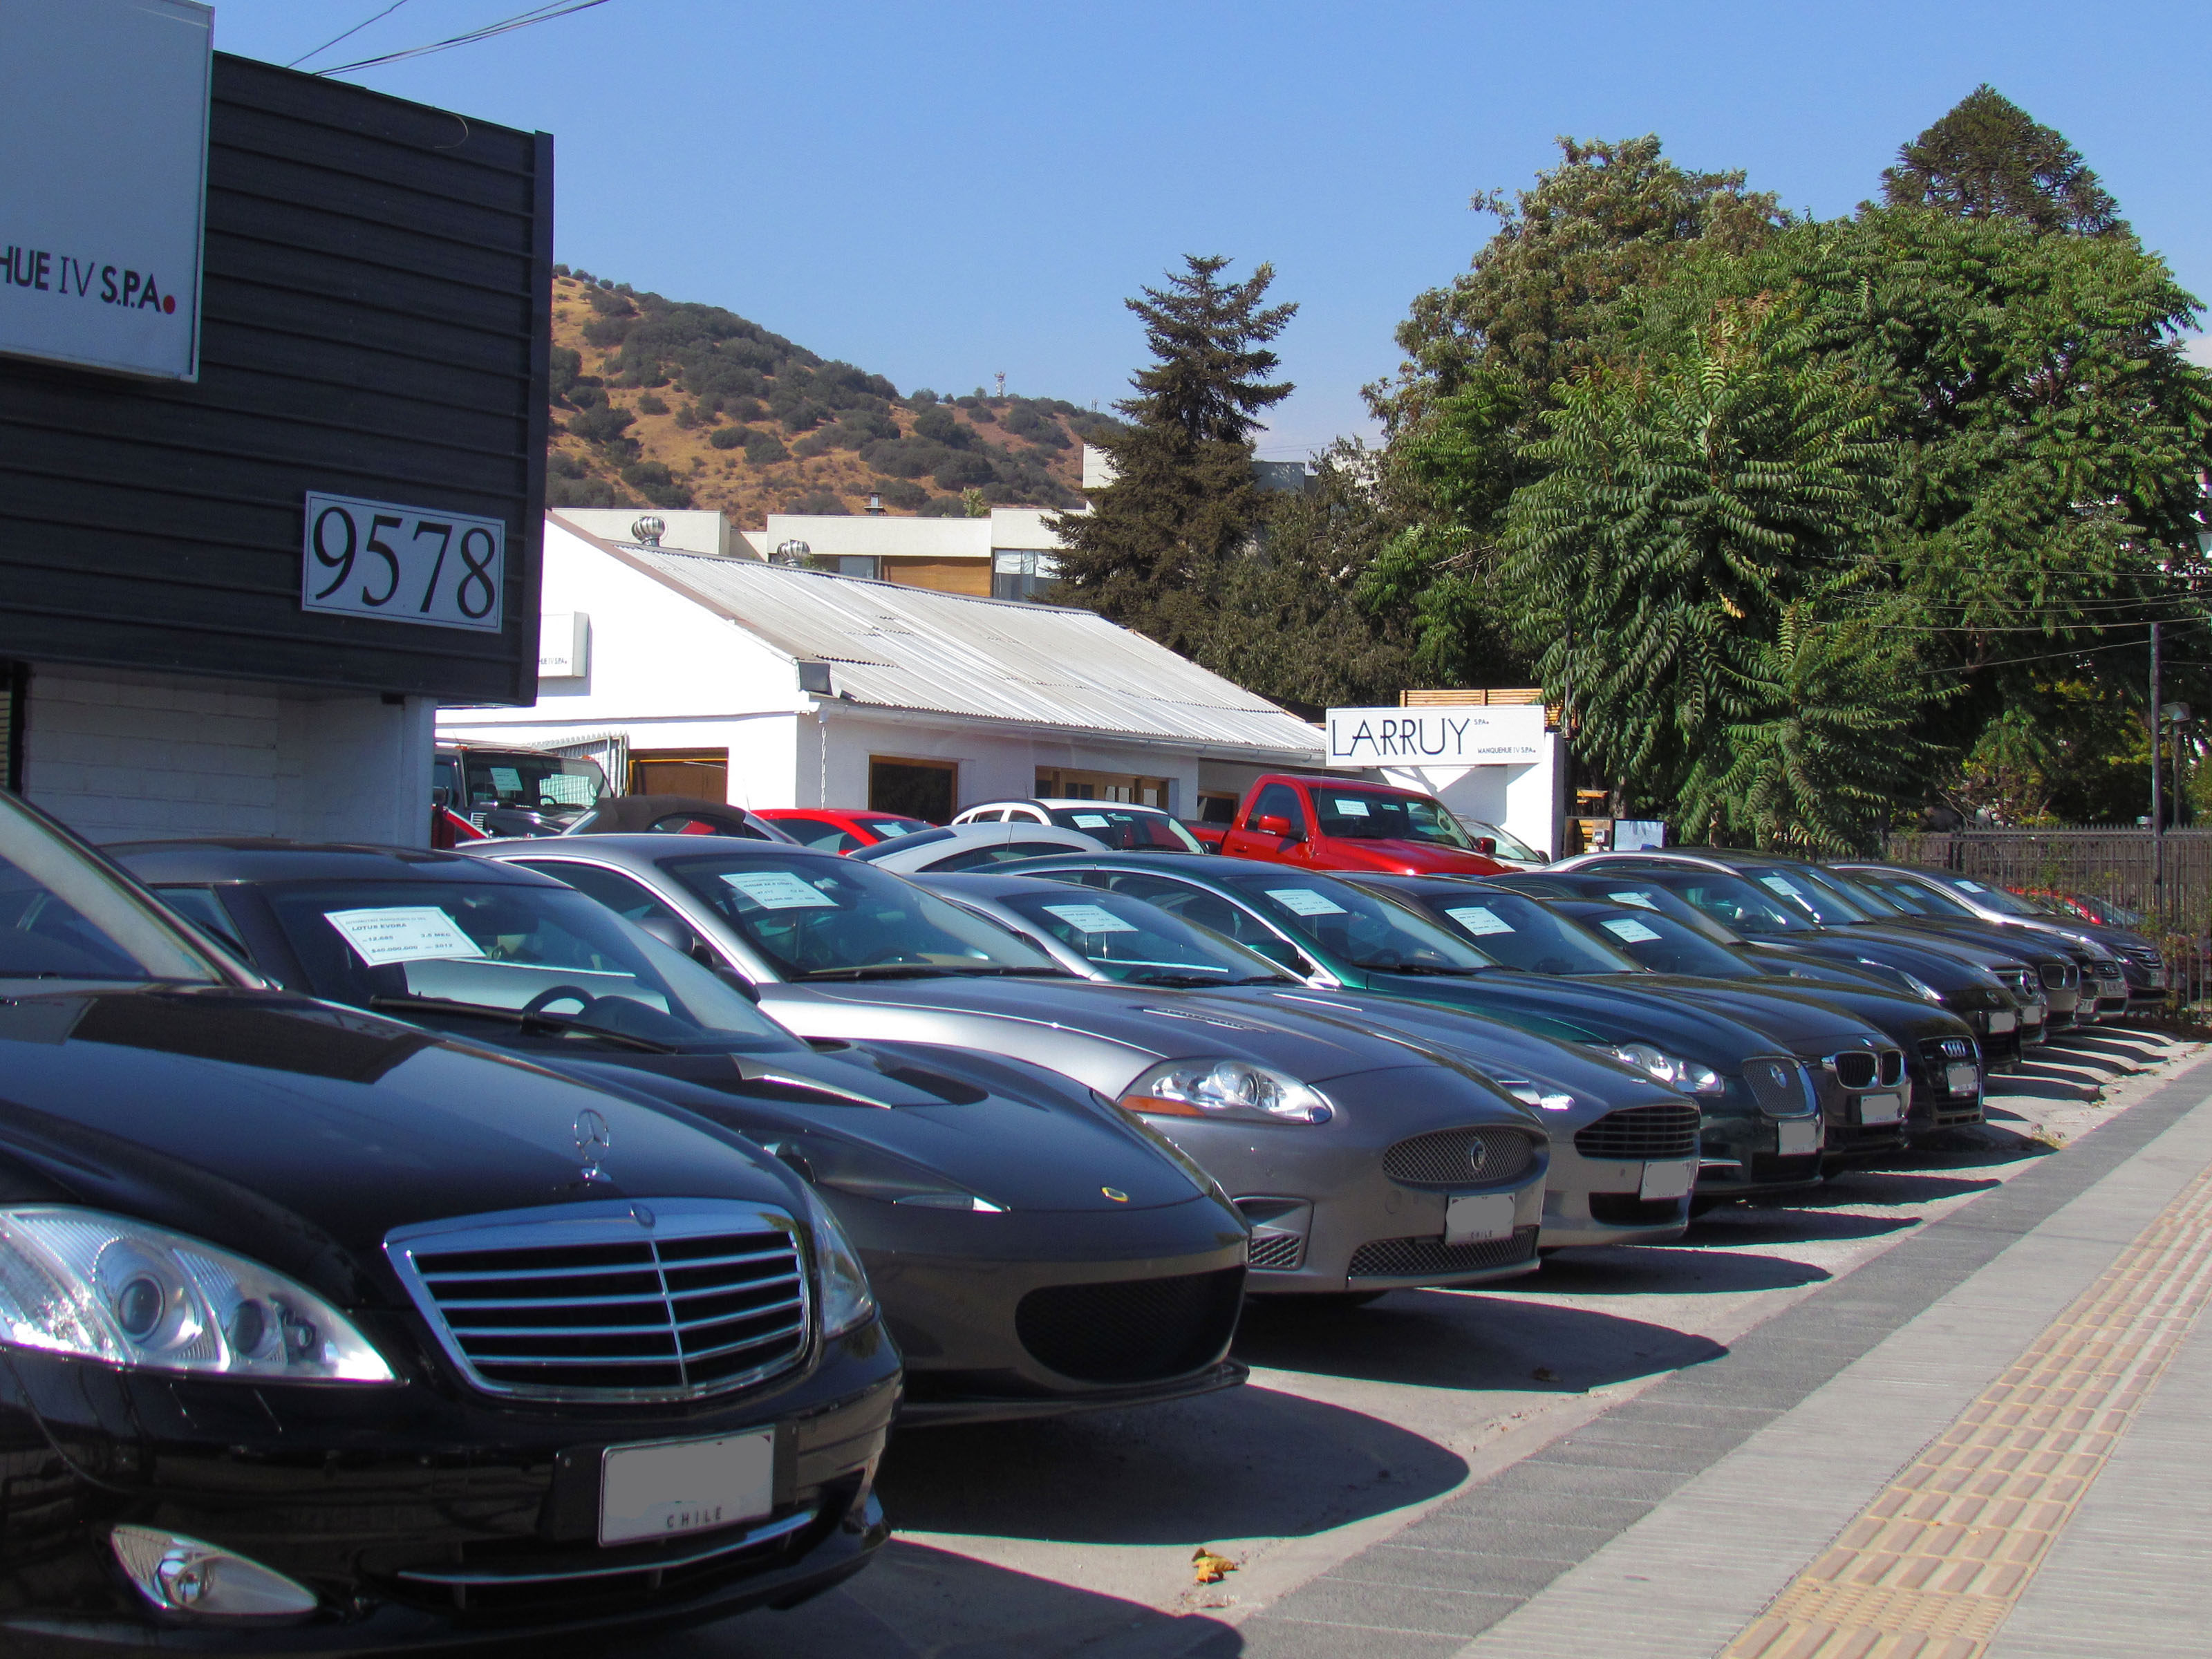 Dealers More Optimistic About Used Car Market vs. New